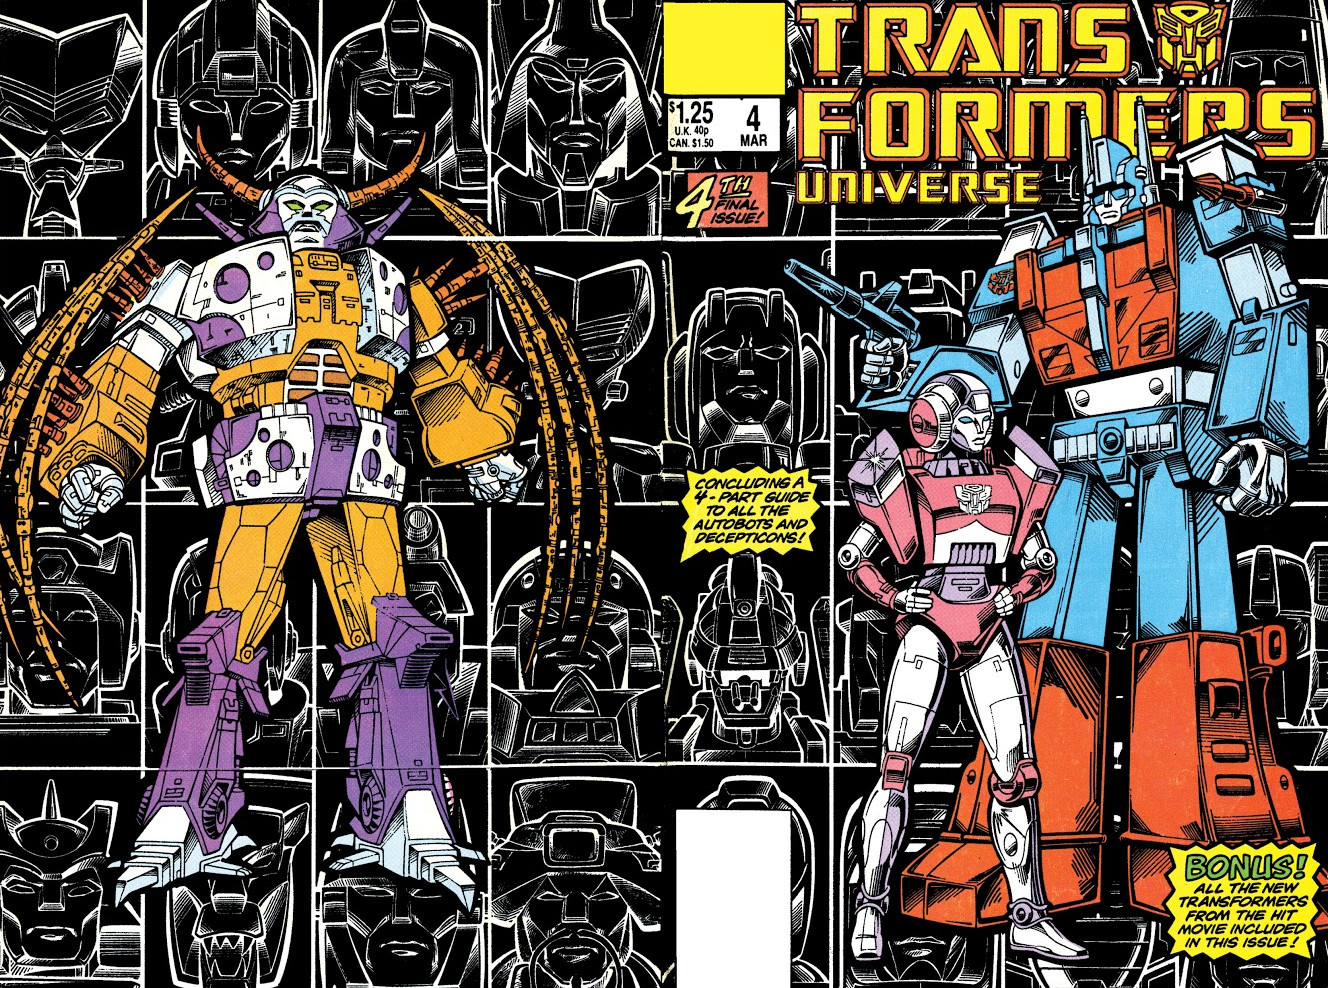 https://vignette.wikia.nocookie.net/marveldatabase/images/a/ae/Transformers_Universe_Vol_1_4_Wraparound.jpg